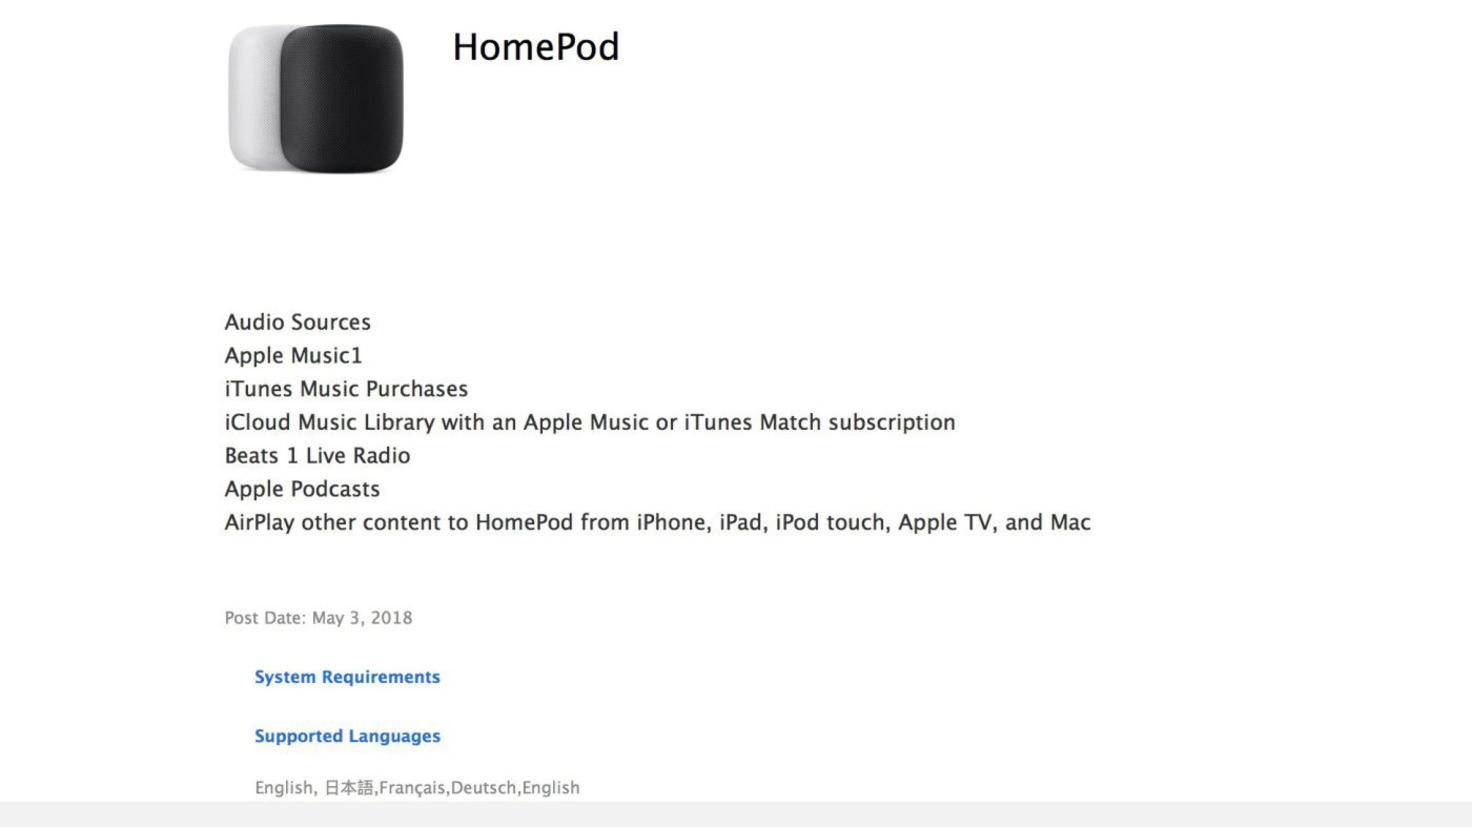 homepod-doc